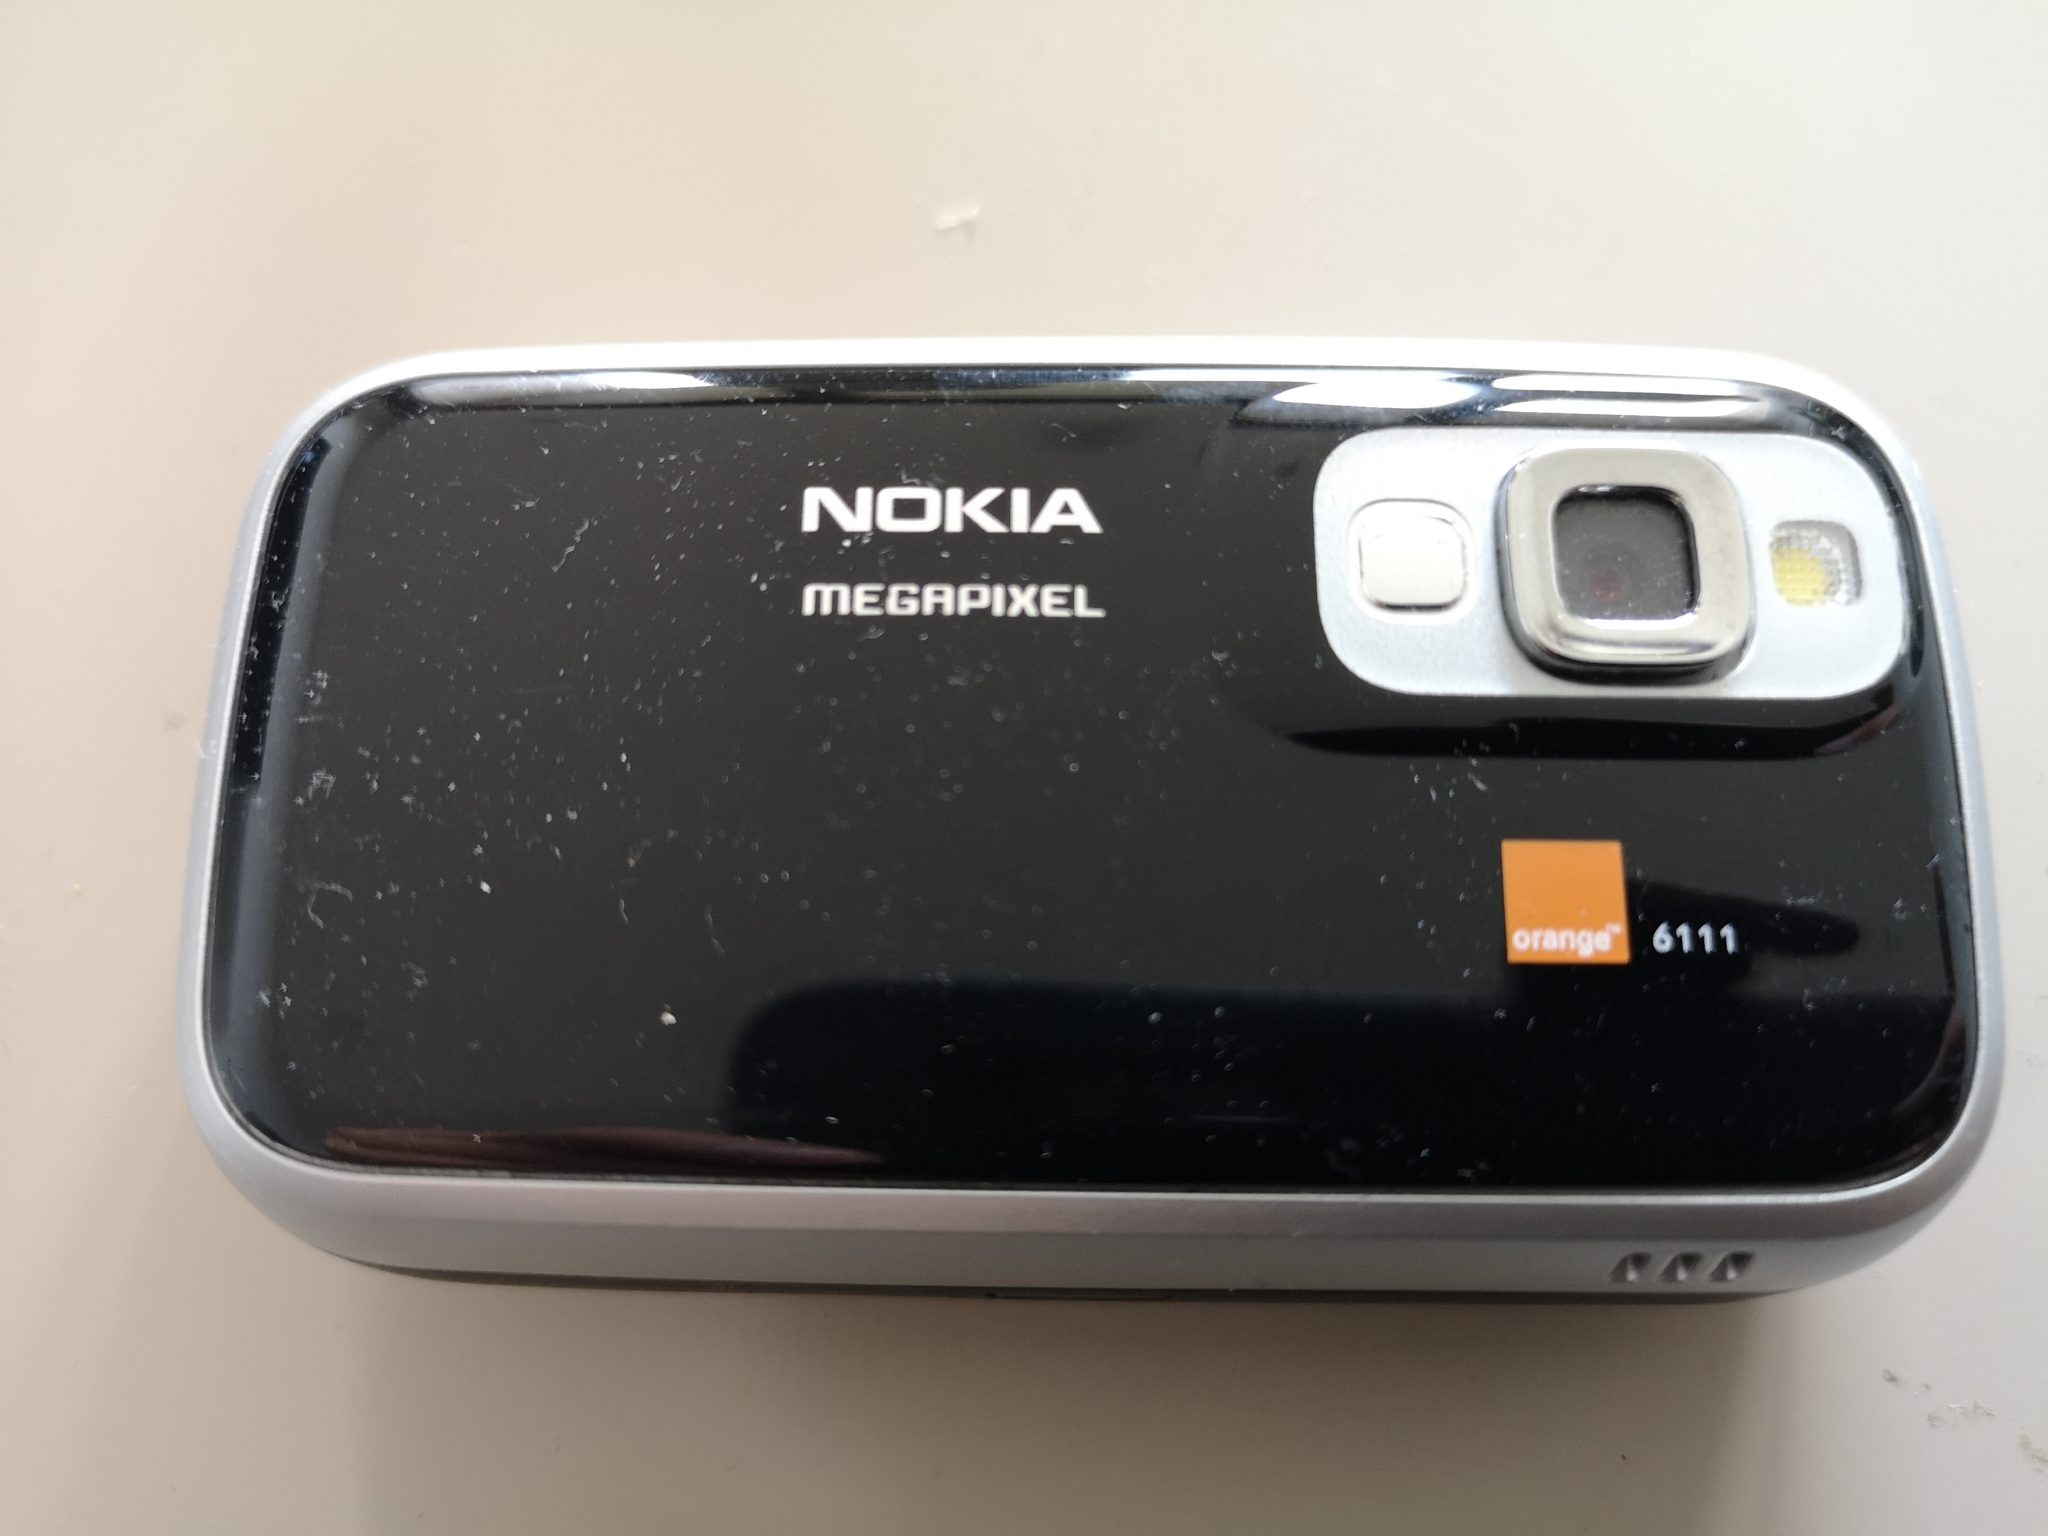 Nokia 6111 Slide Phone Review - Ultra Portable Full-Featured Retro Phone